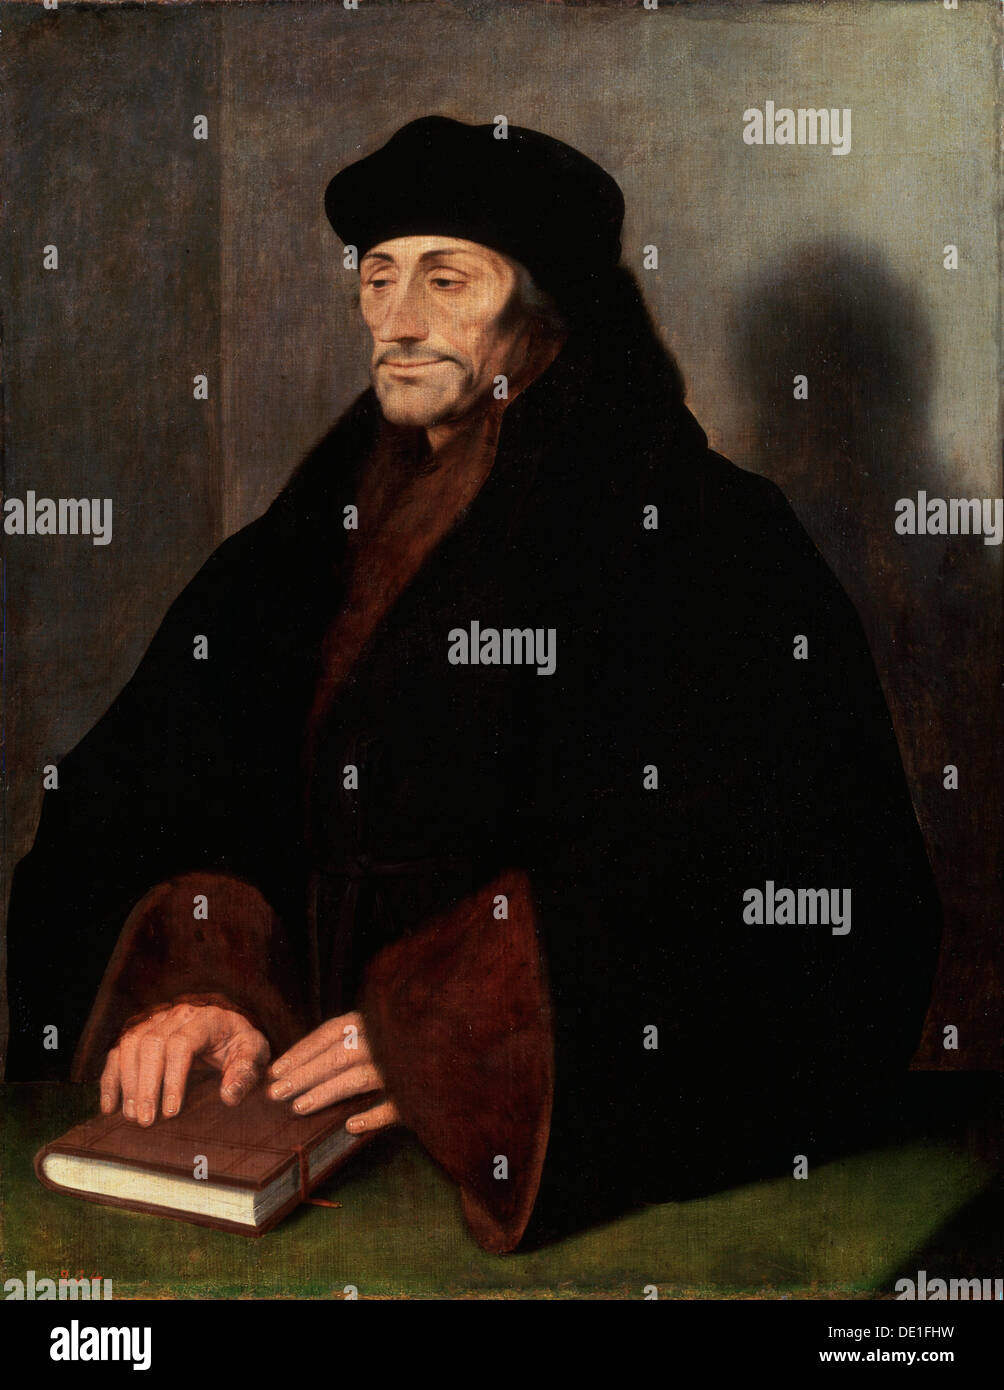 'Portrait of Erasmus of Rotterdam', (1466/69-1536), 1523. Artist: Hans Holbein the Younger - Stock Image